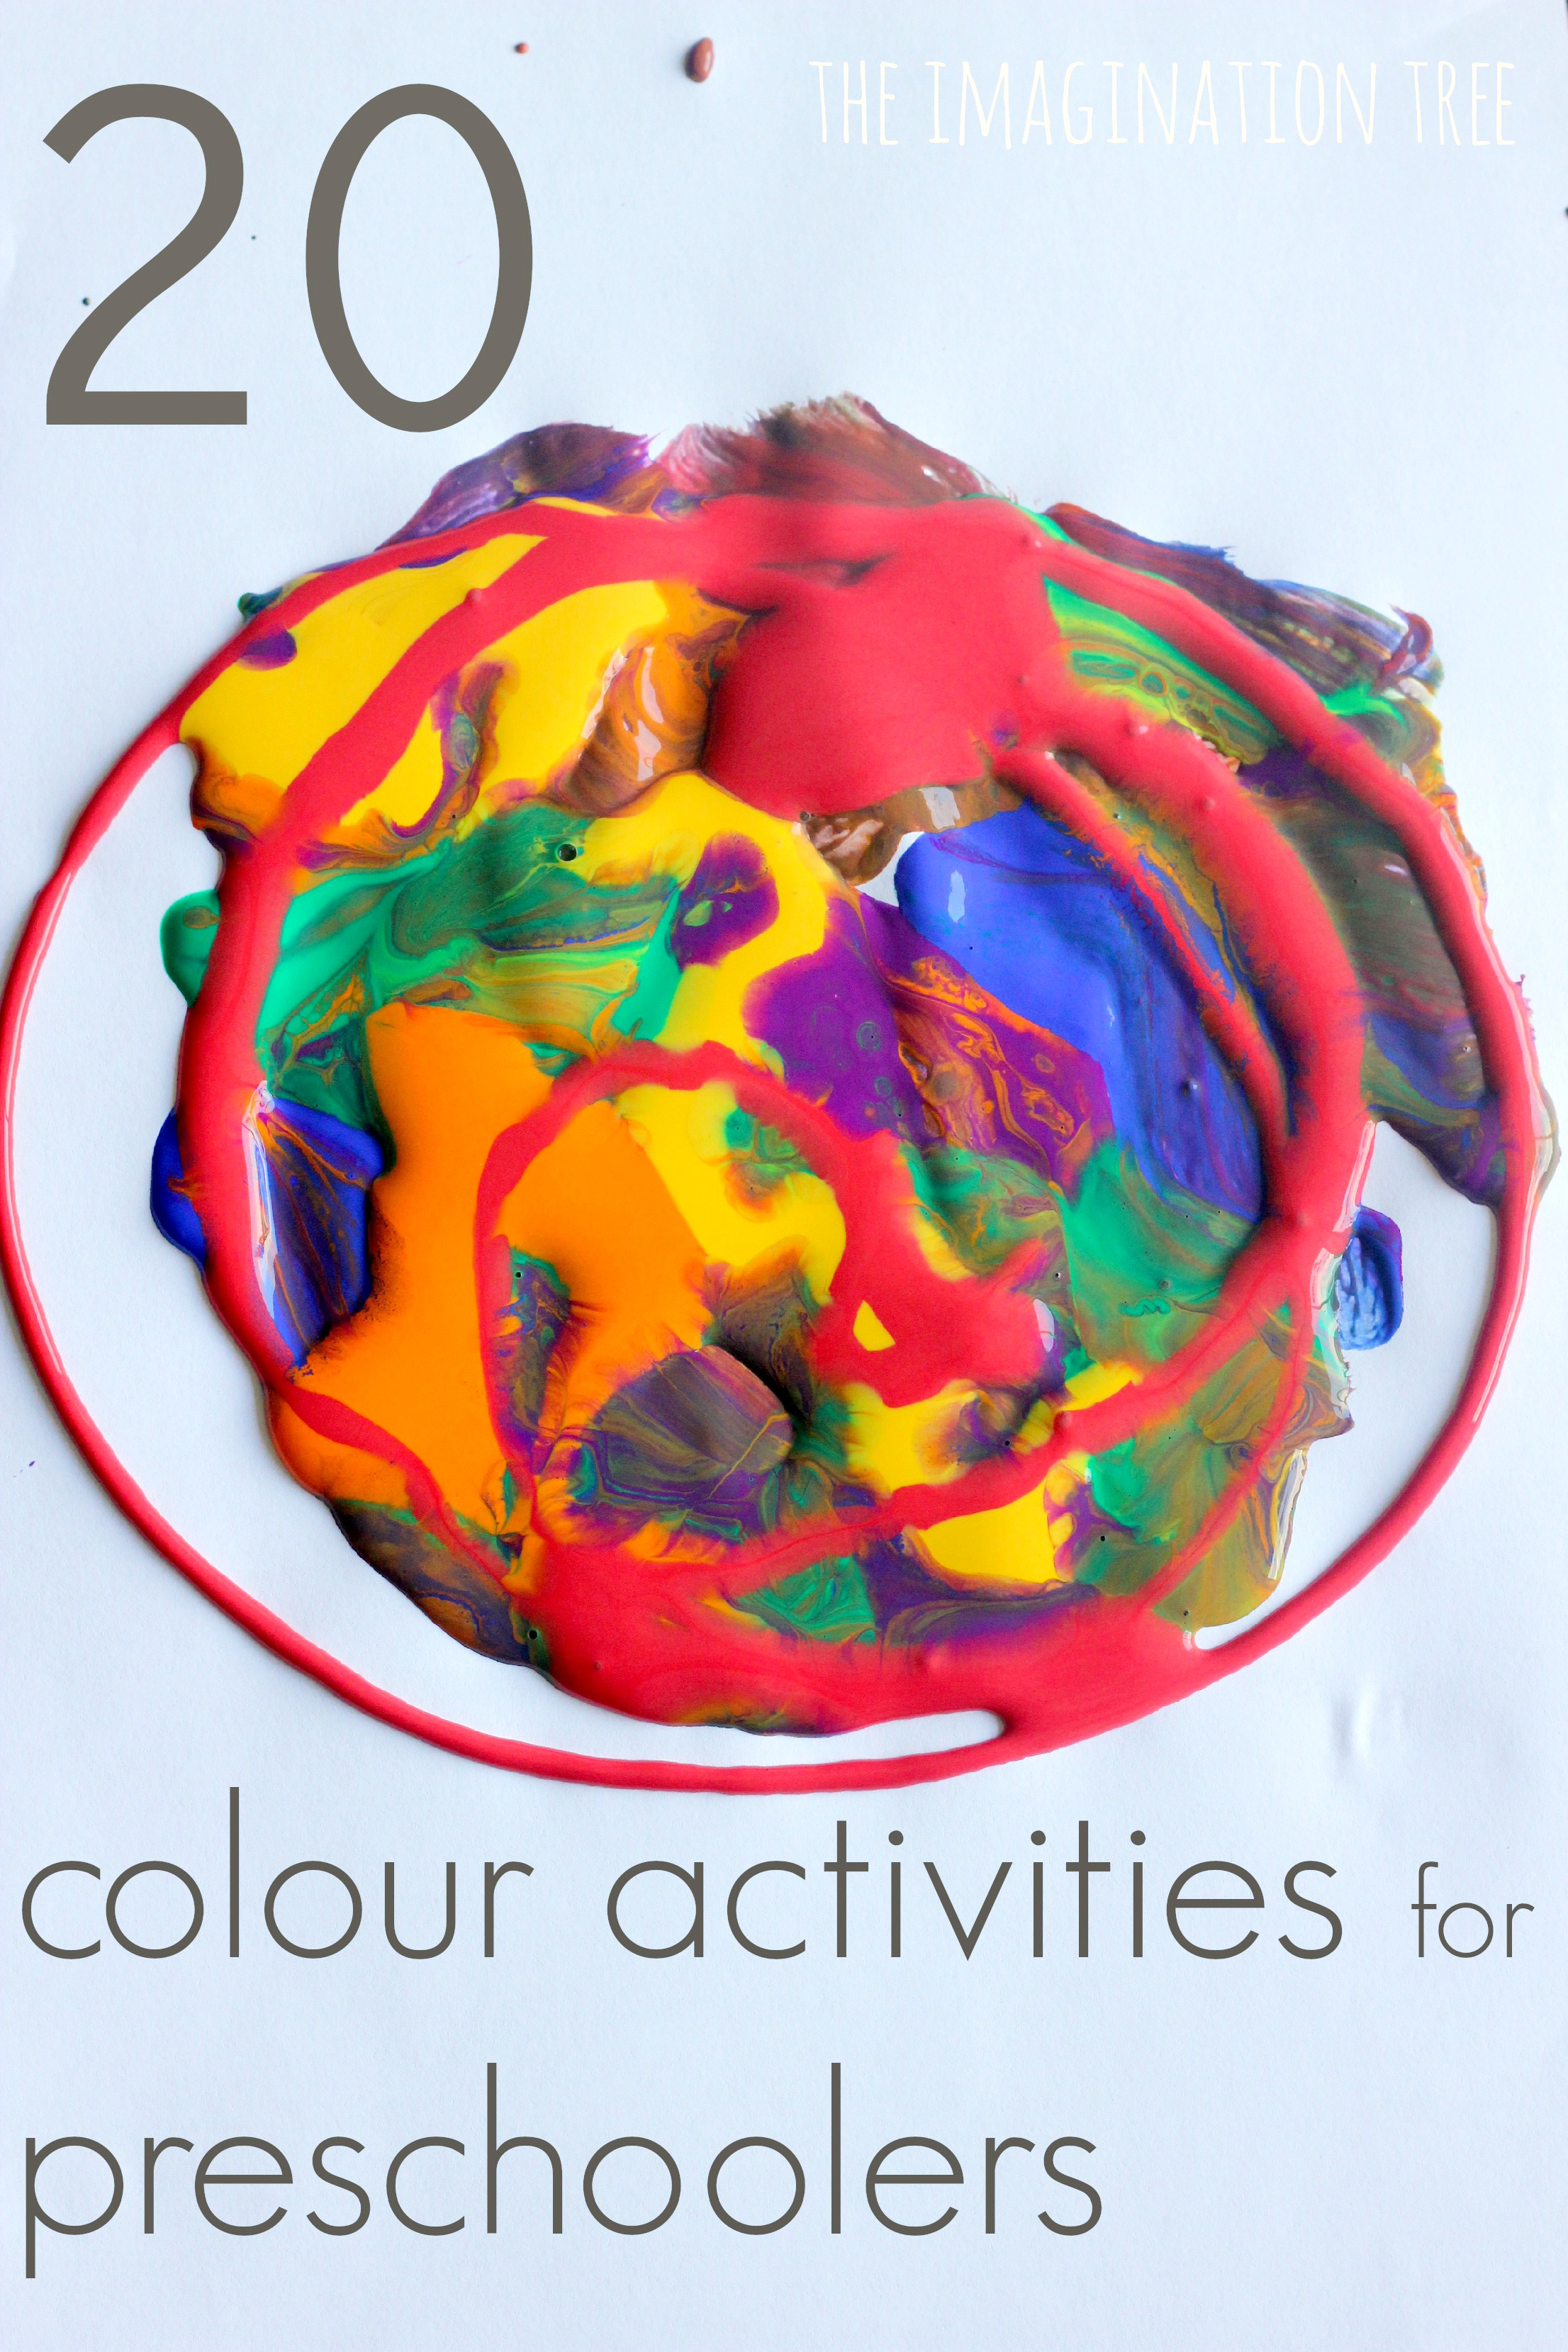 20 colour activities for preschoolers - Colour Game For Toddlers